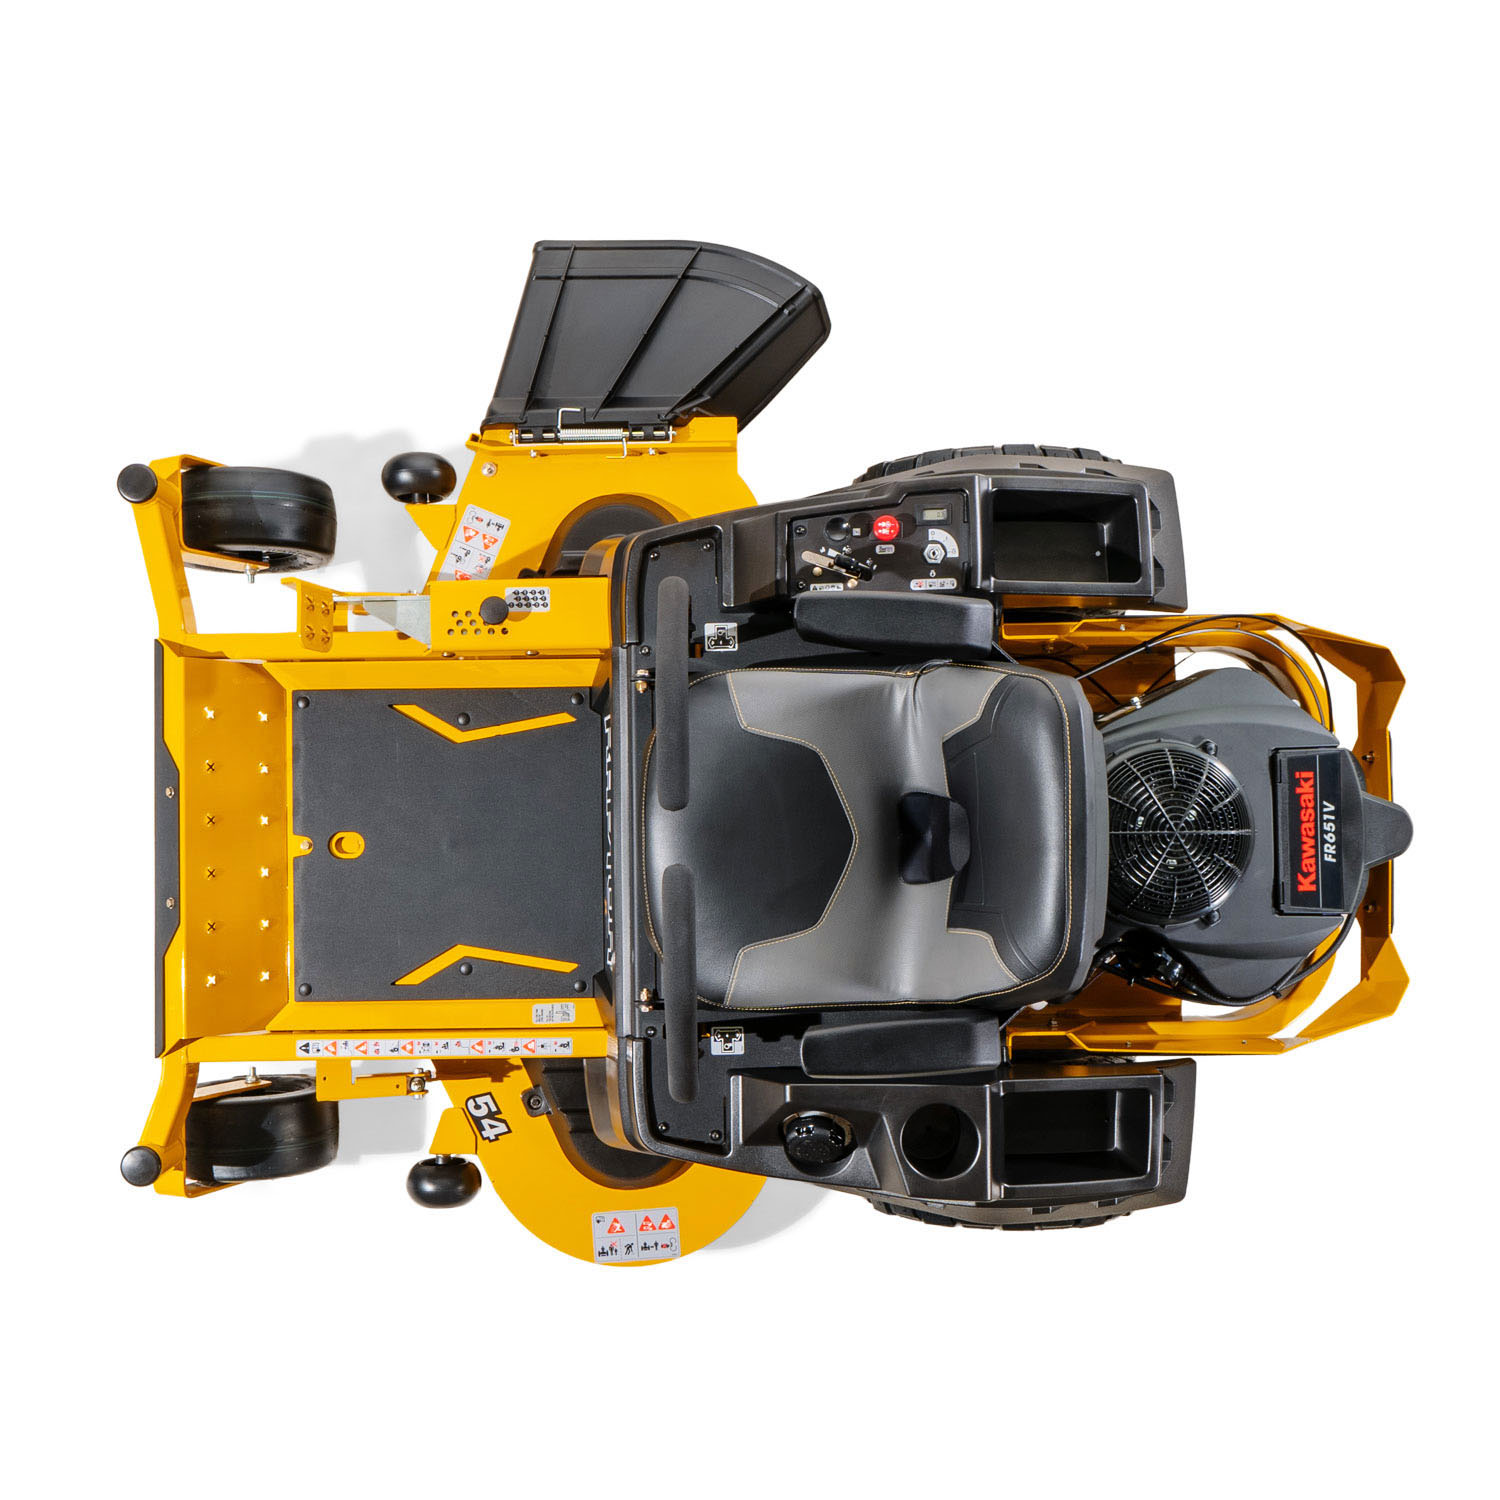 Image of a yellow Hustler mower from above